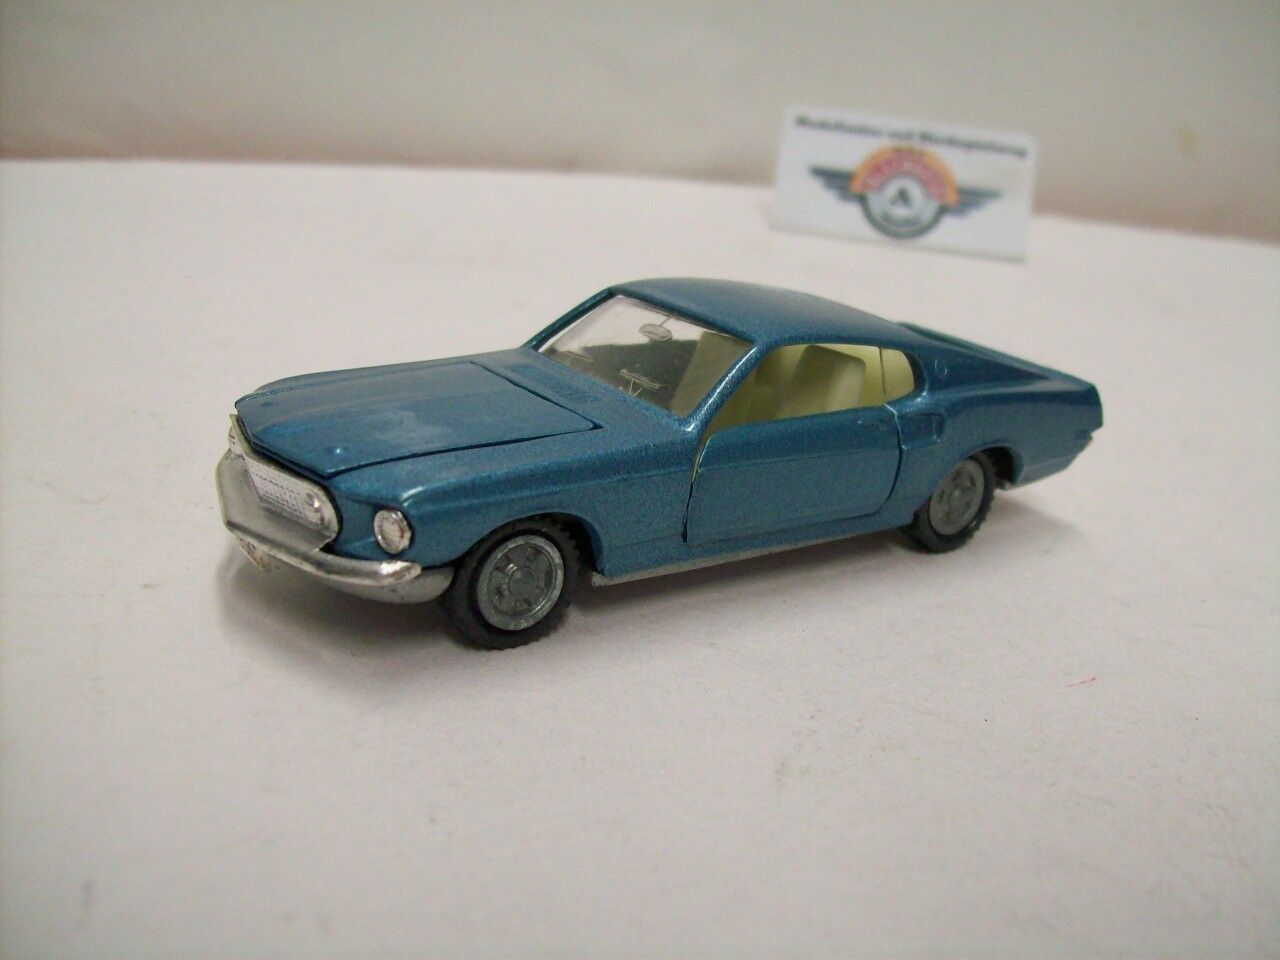 Ford Mustang, 1969, bluee metallic, Intercars 1 43 (Made in Spain), Rarität